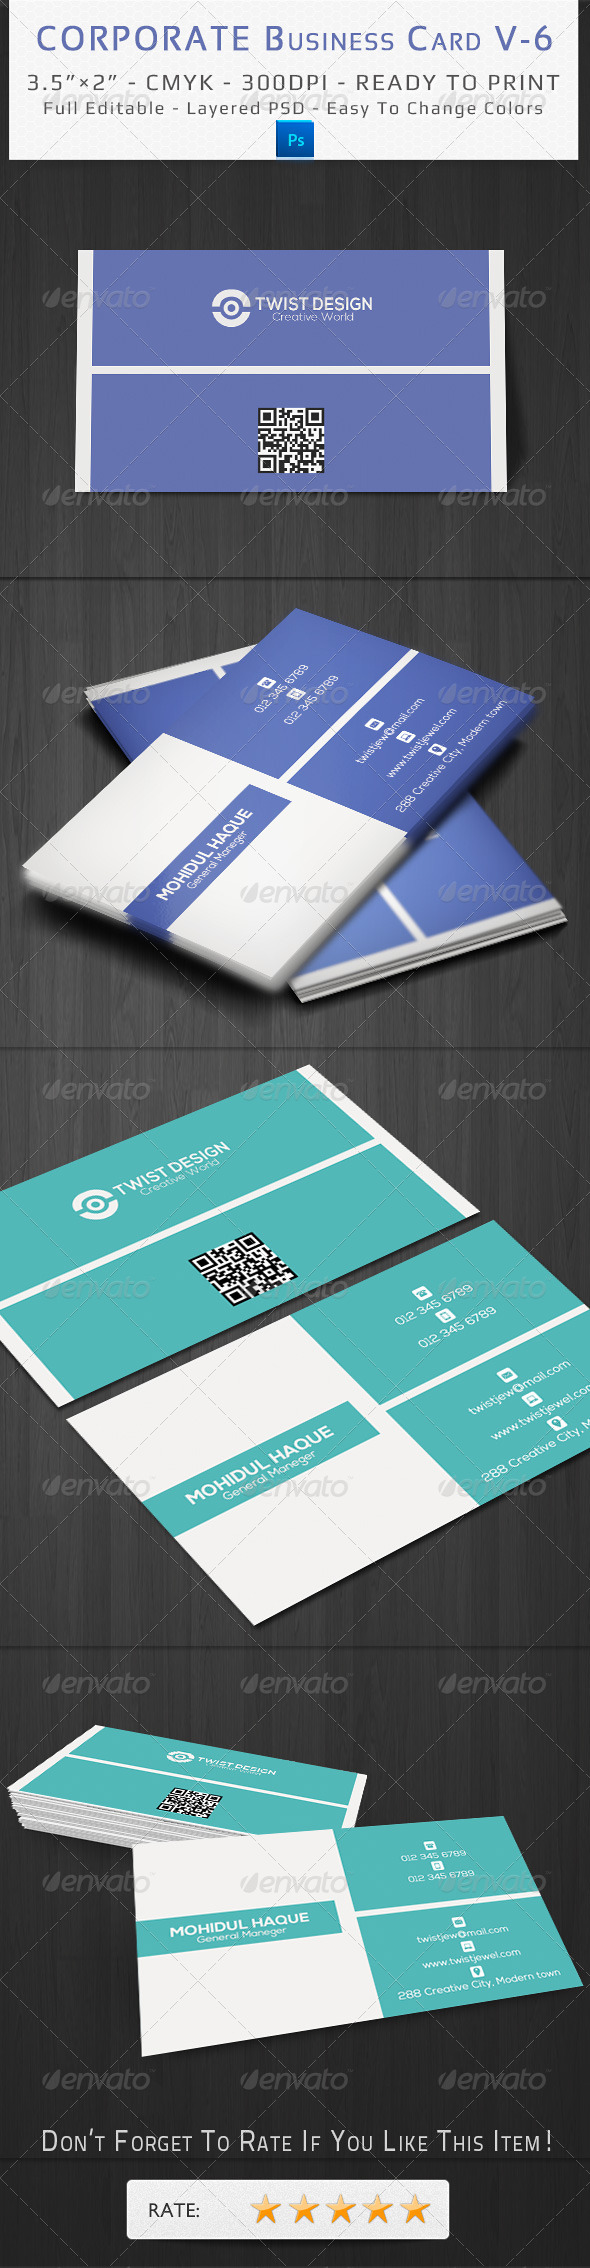 GraphicRiver Corporate Business Card V-6 8620992